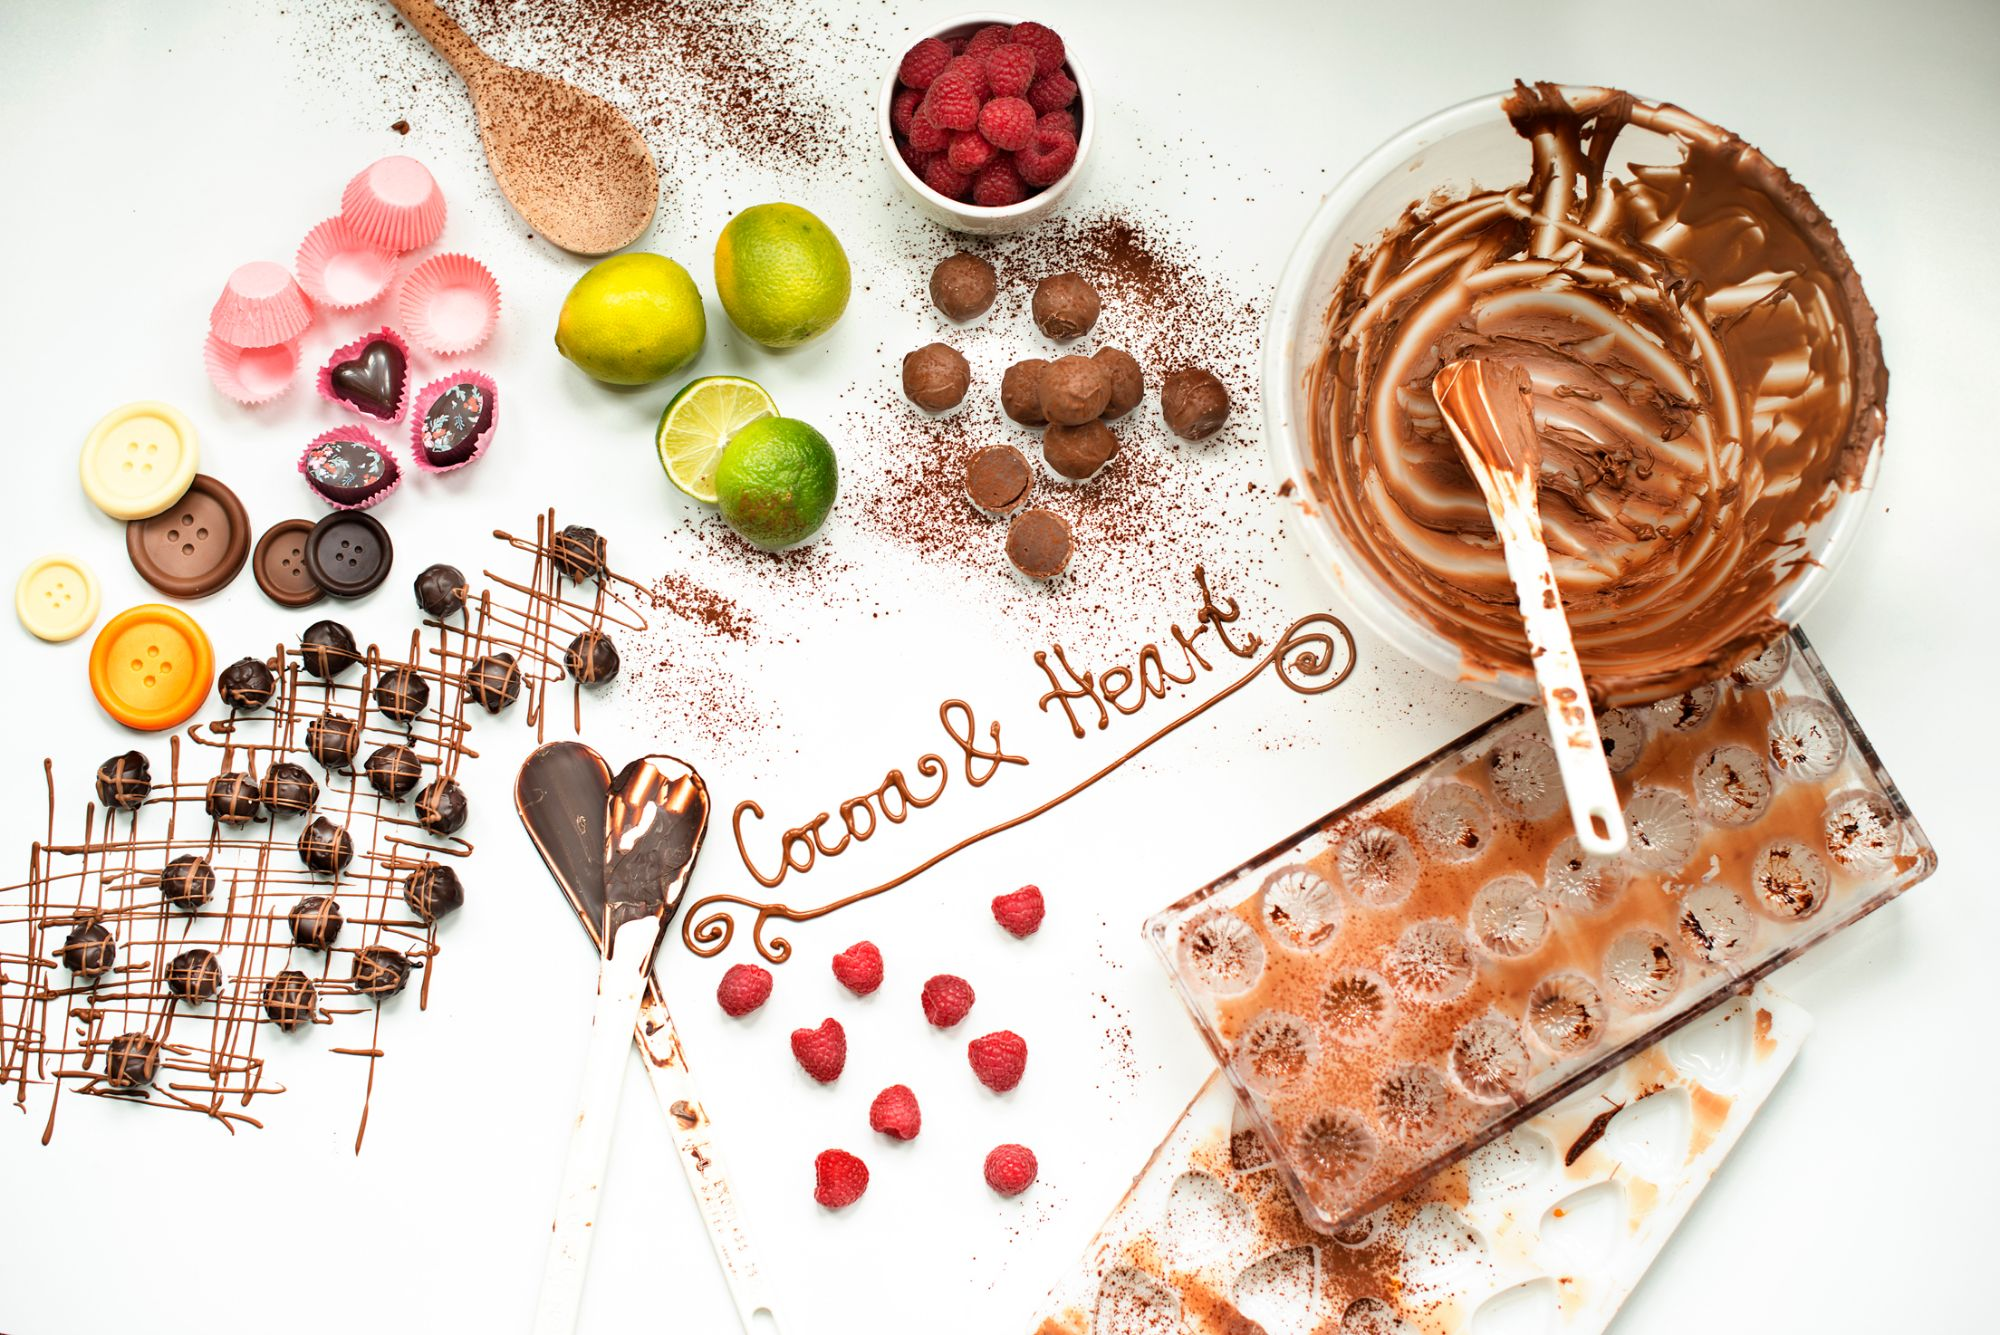 Chocolate Making at Cocoa & Heart